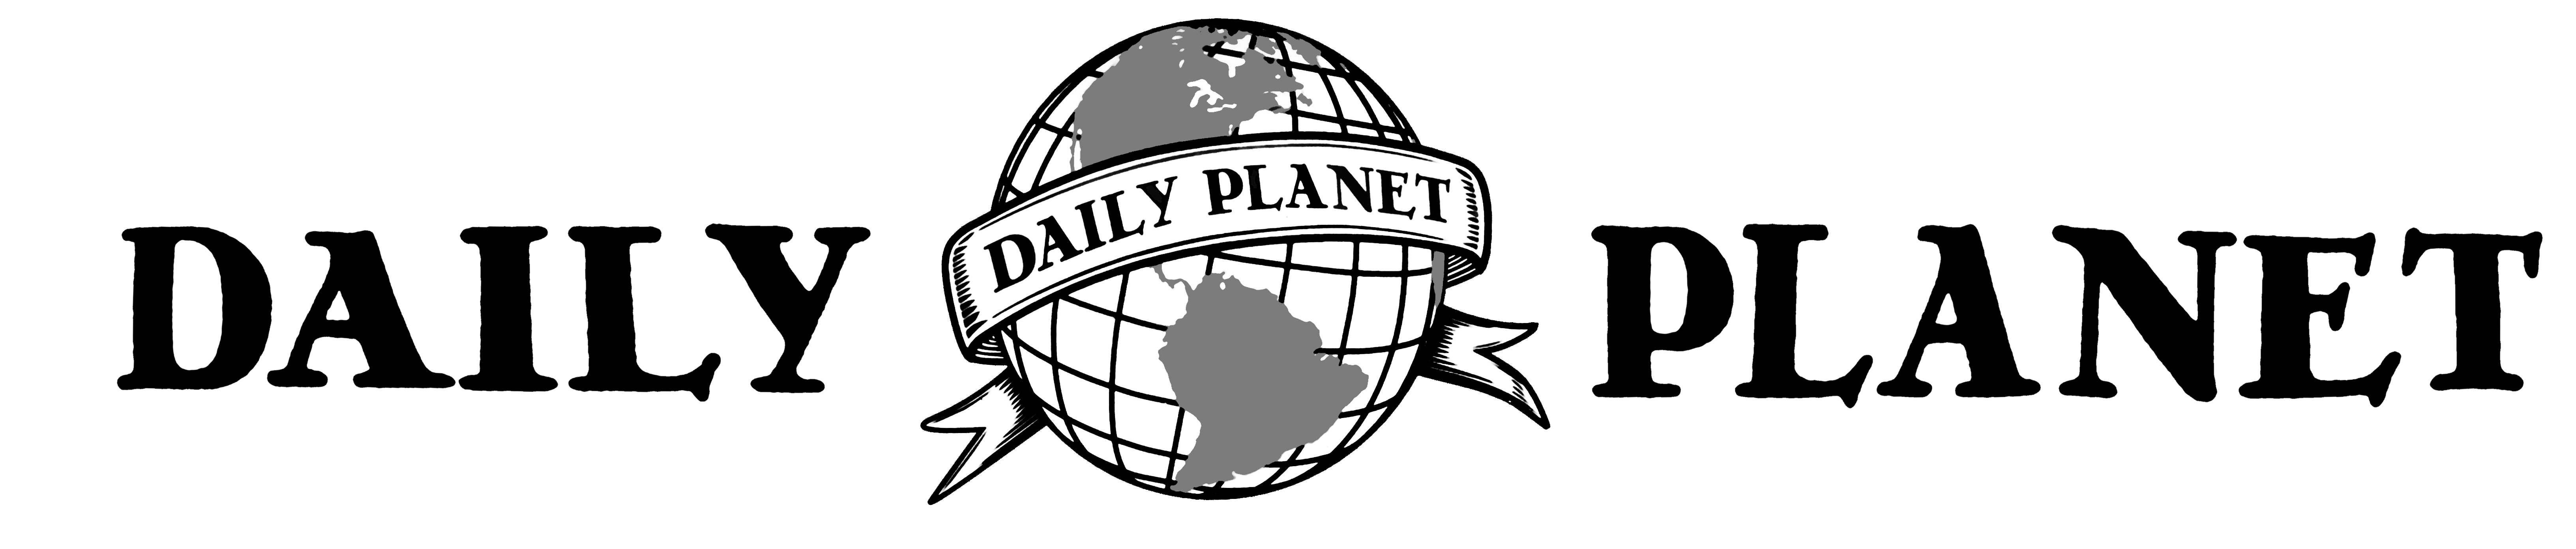 Daily Planet Logo - Daily Planet Logo 1930-1932 by NoahLC on DeviantArt